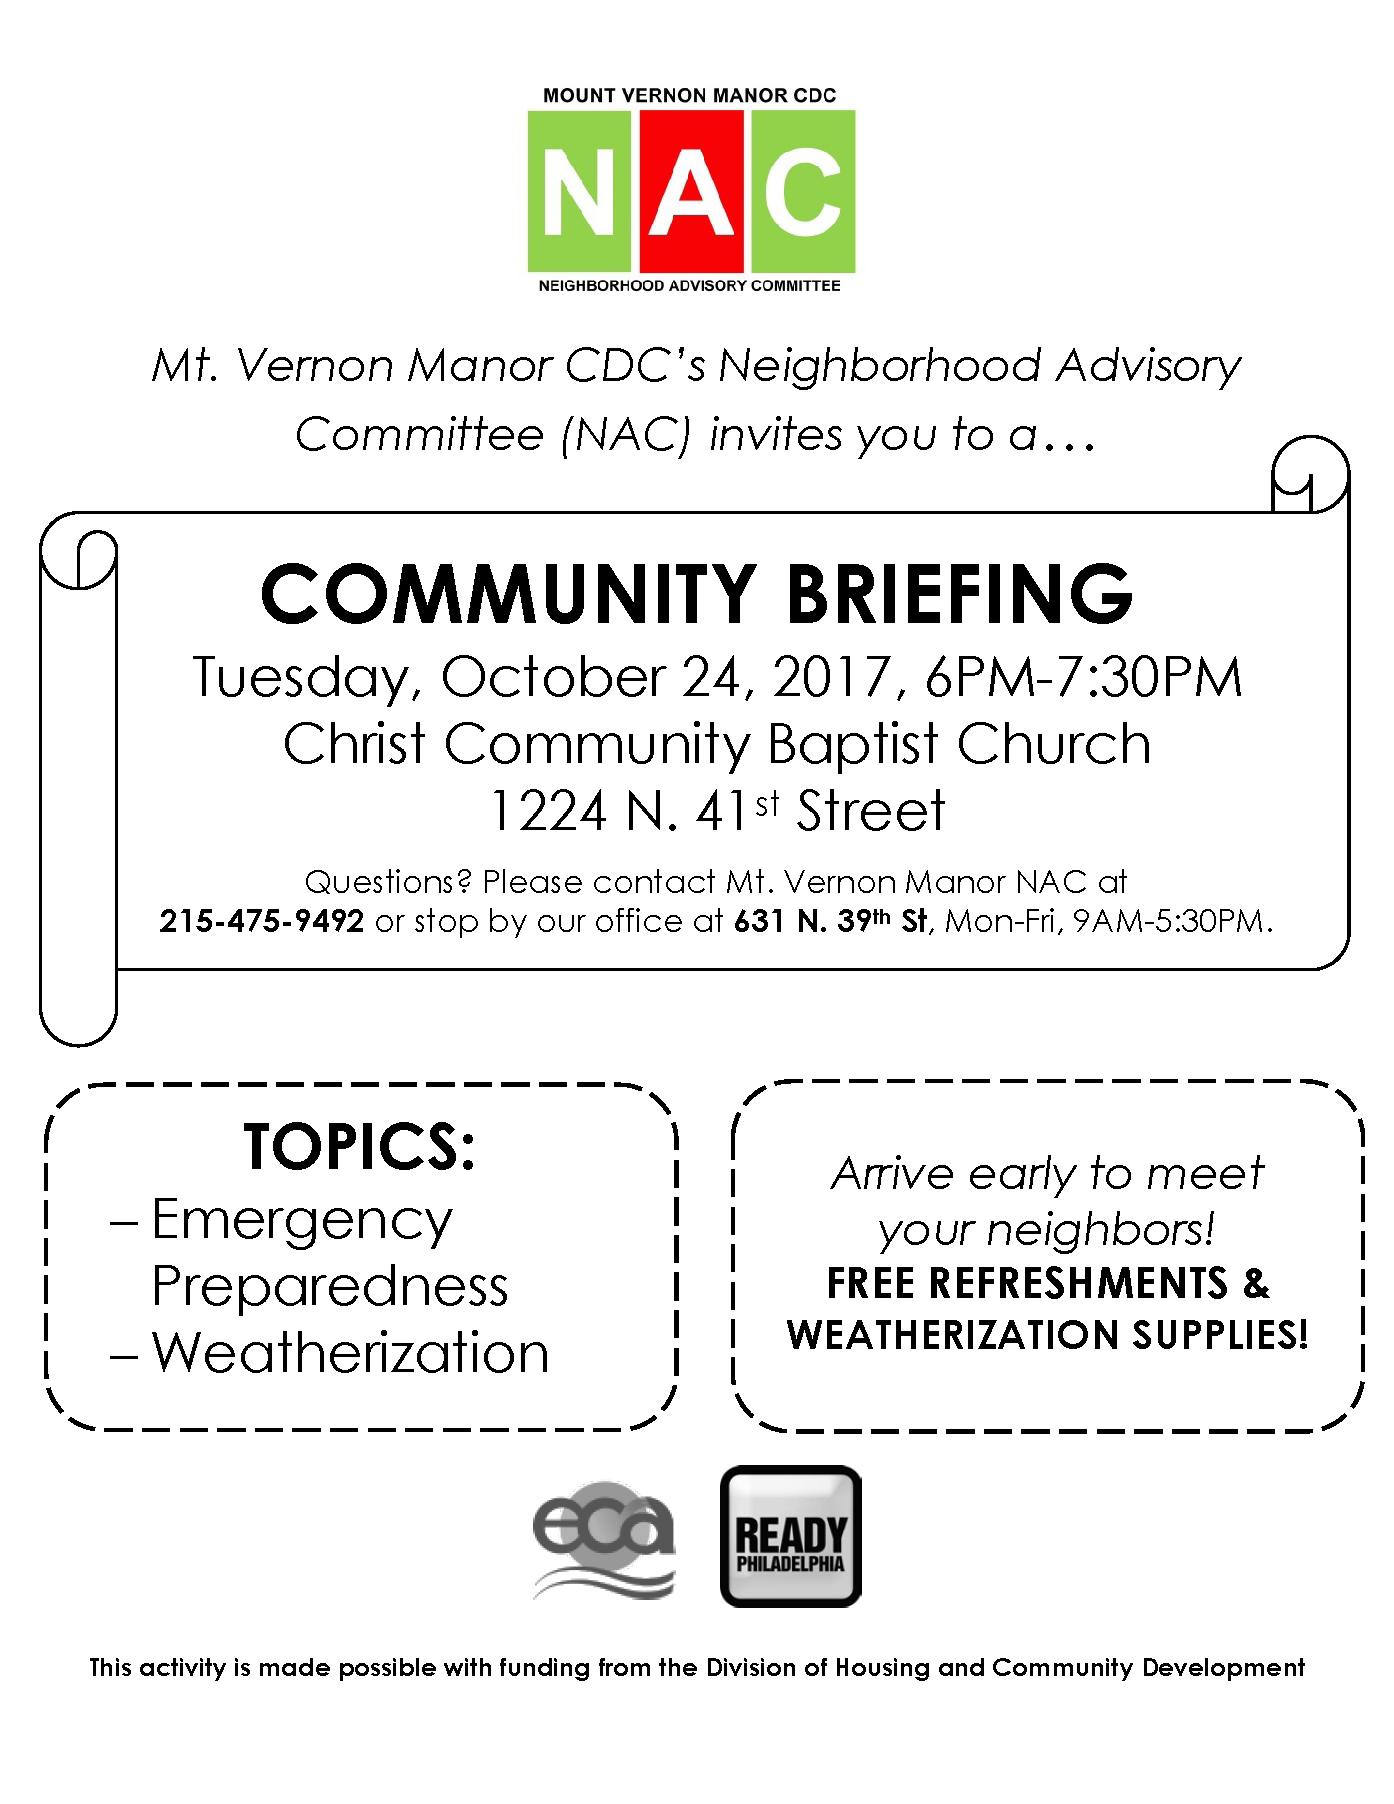 East Parkside Community Briefing Flyer